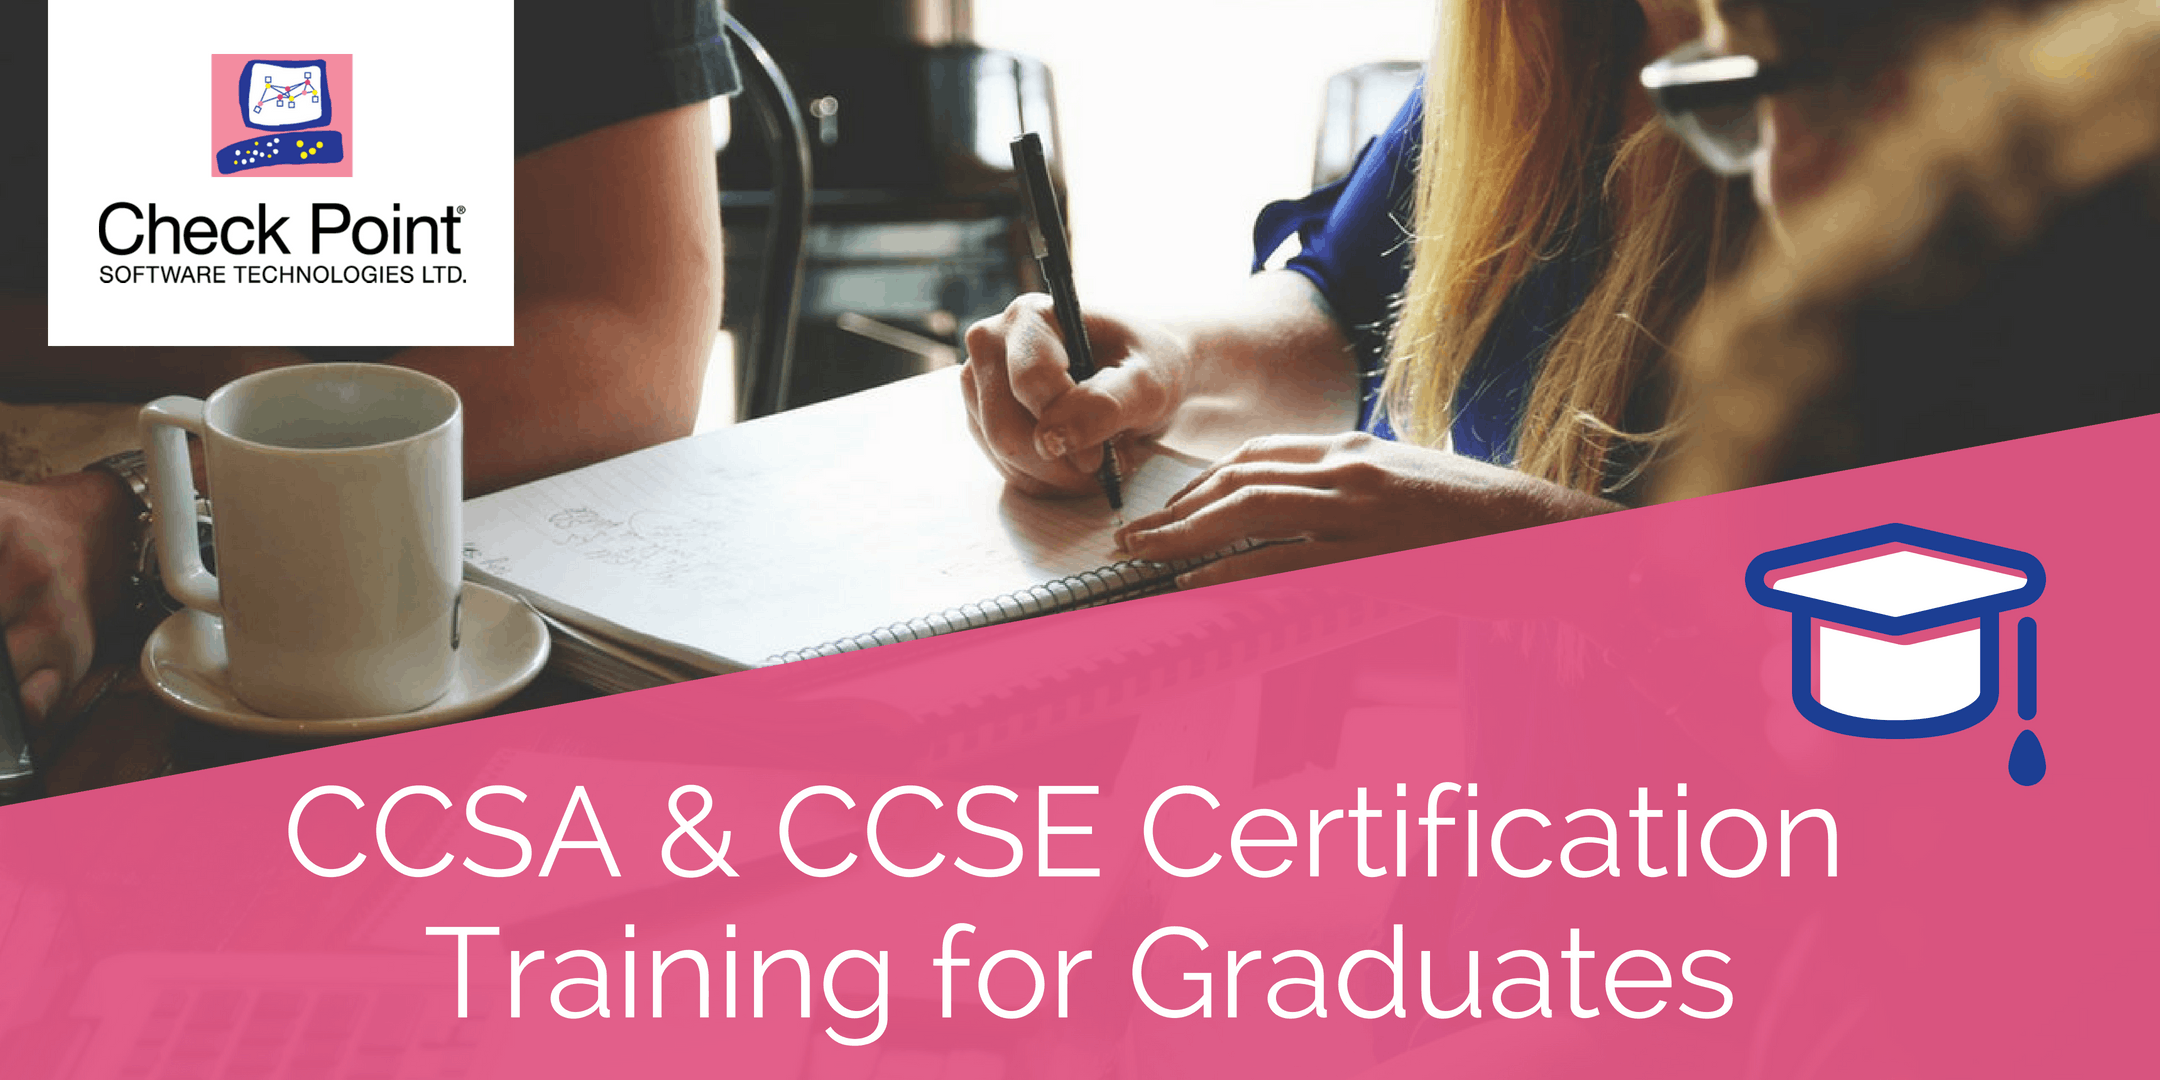 CCSA / CCSE Certification Training for Graduates